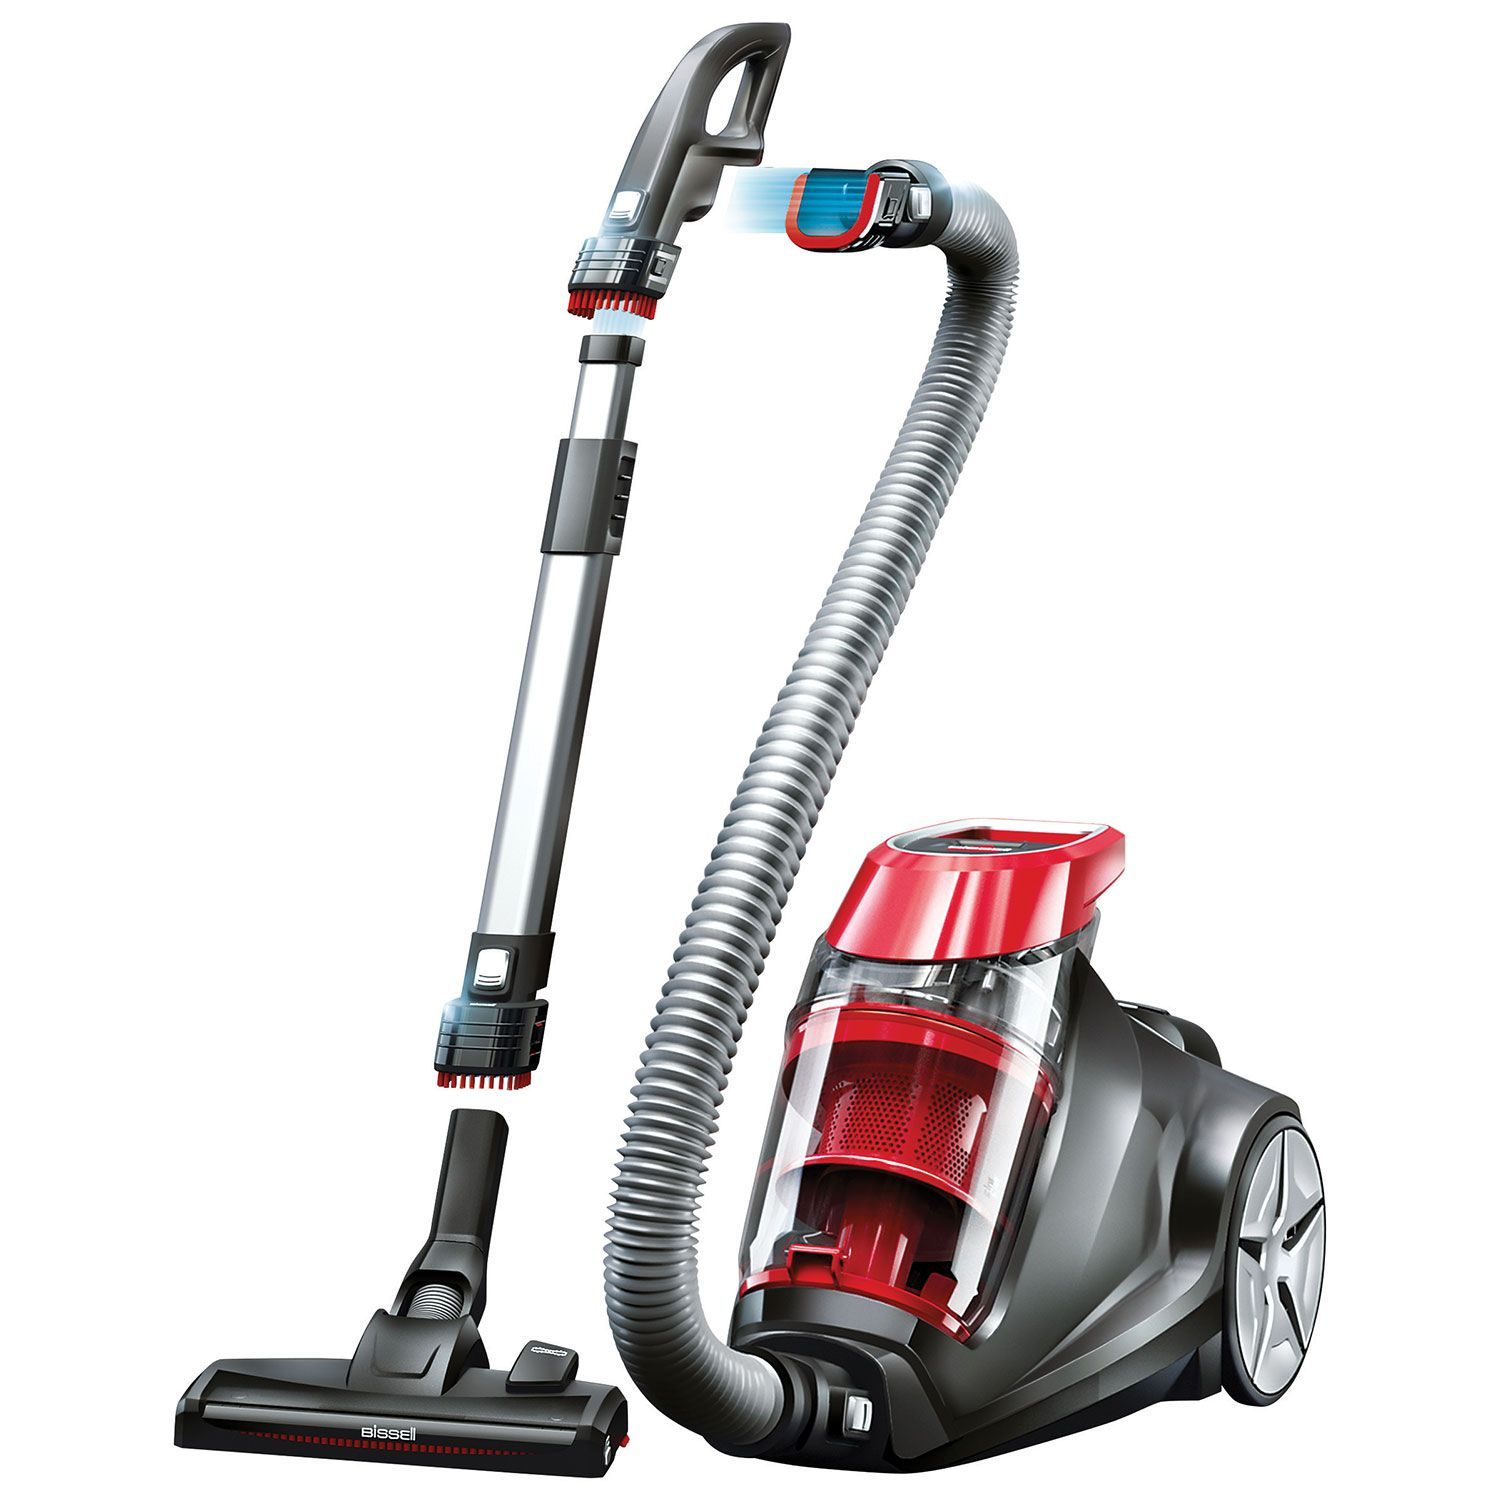 bissell expert bagless canister vacuum red canister vacuums best buy - Canister Vacuums